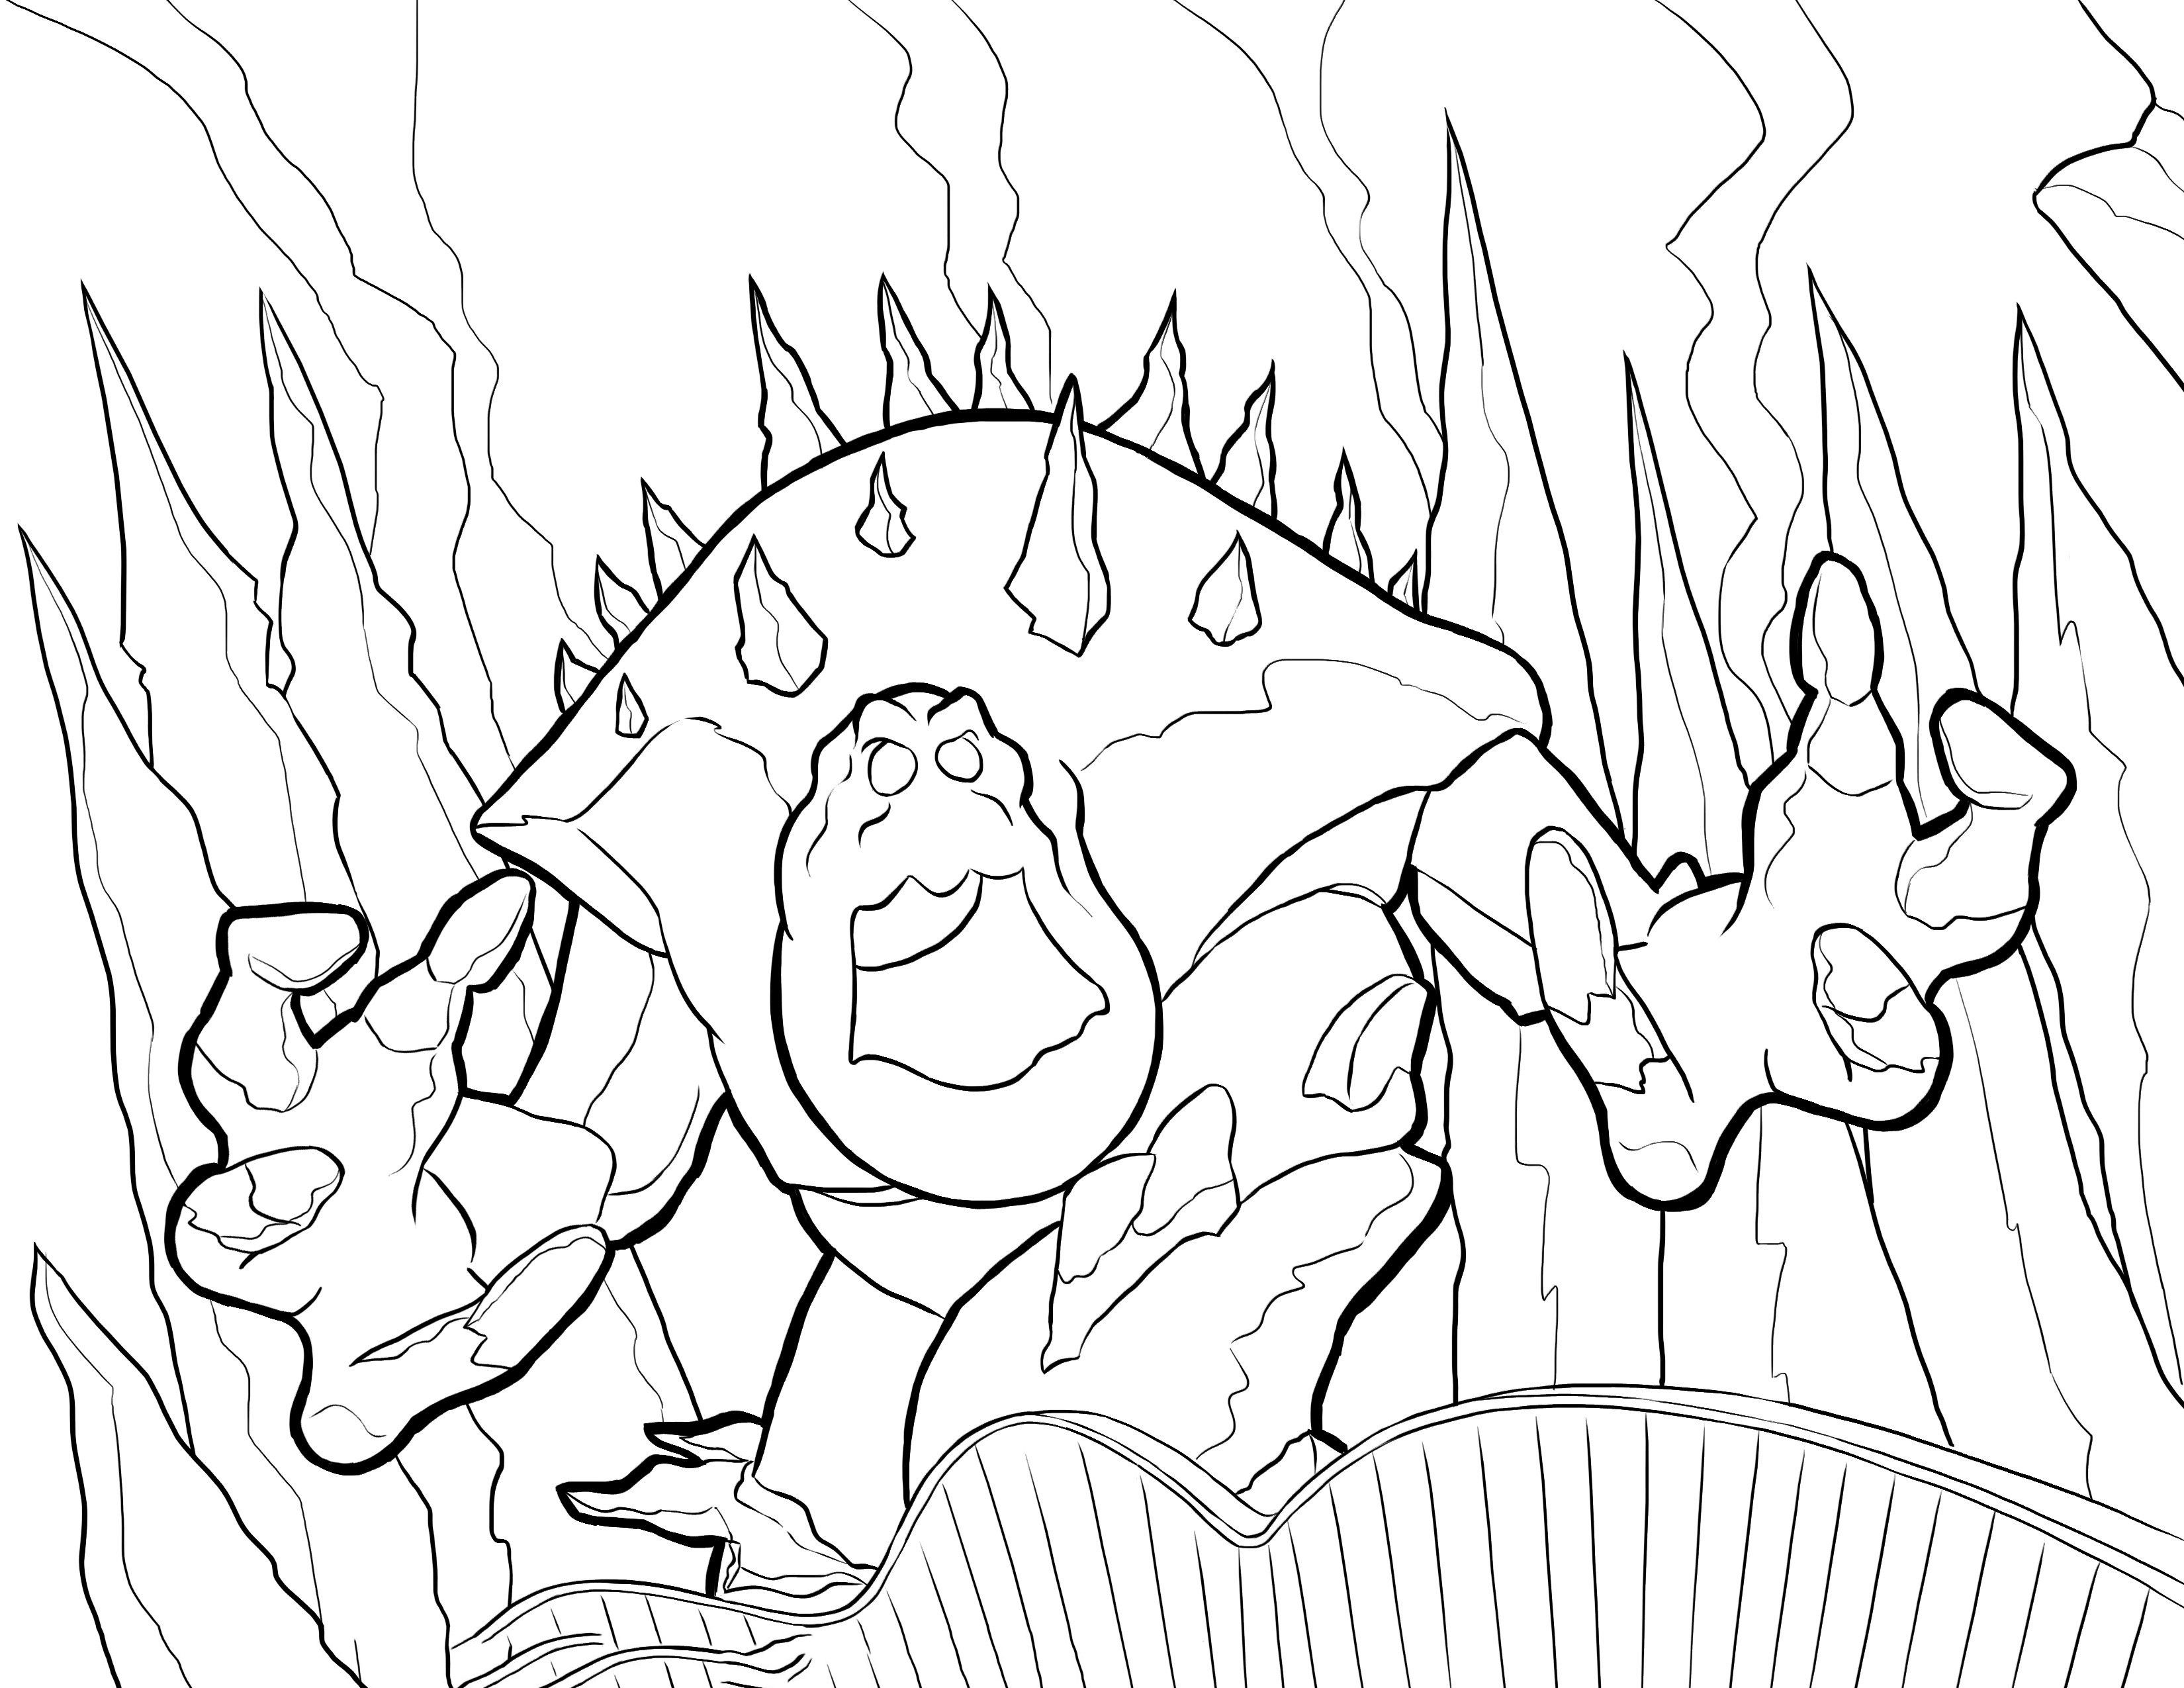 Frozen Coloring Pages For Kids Printable Online Coloring 2